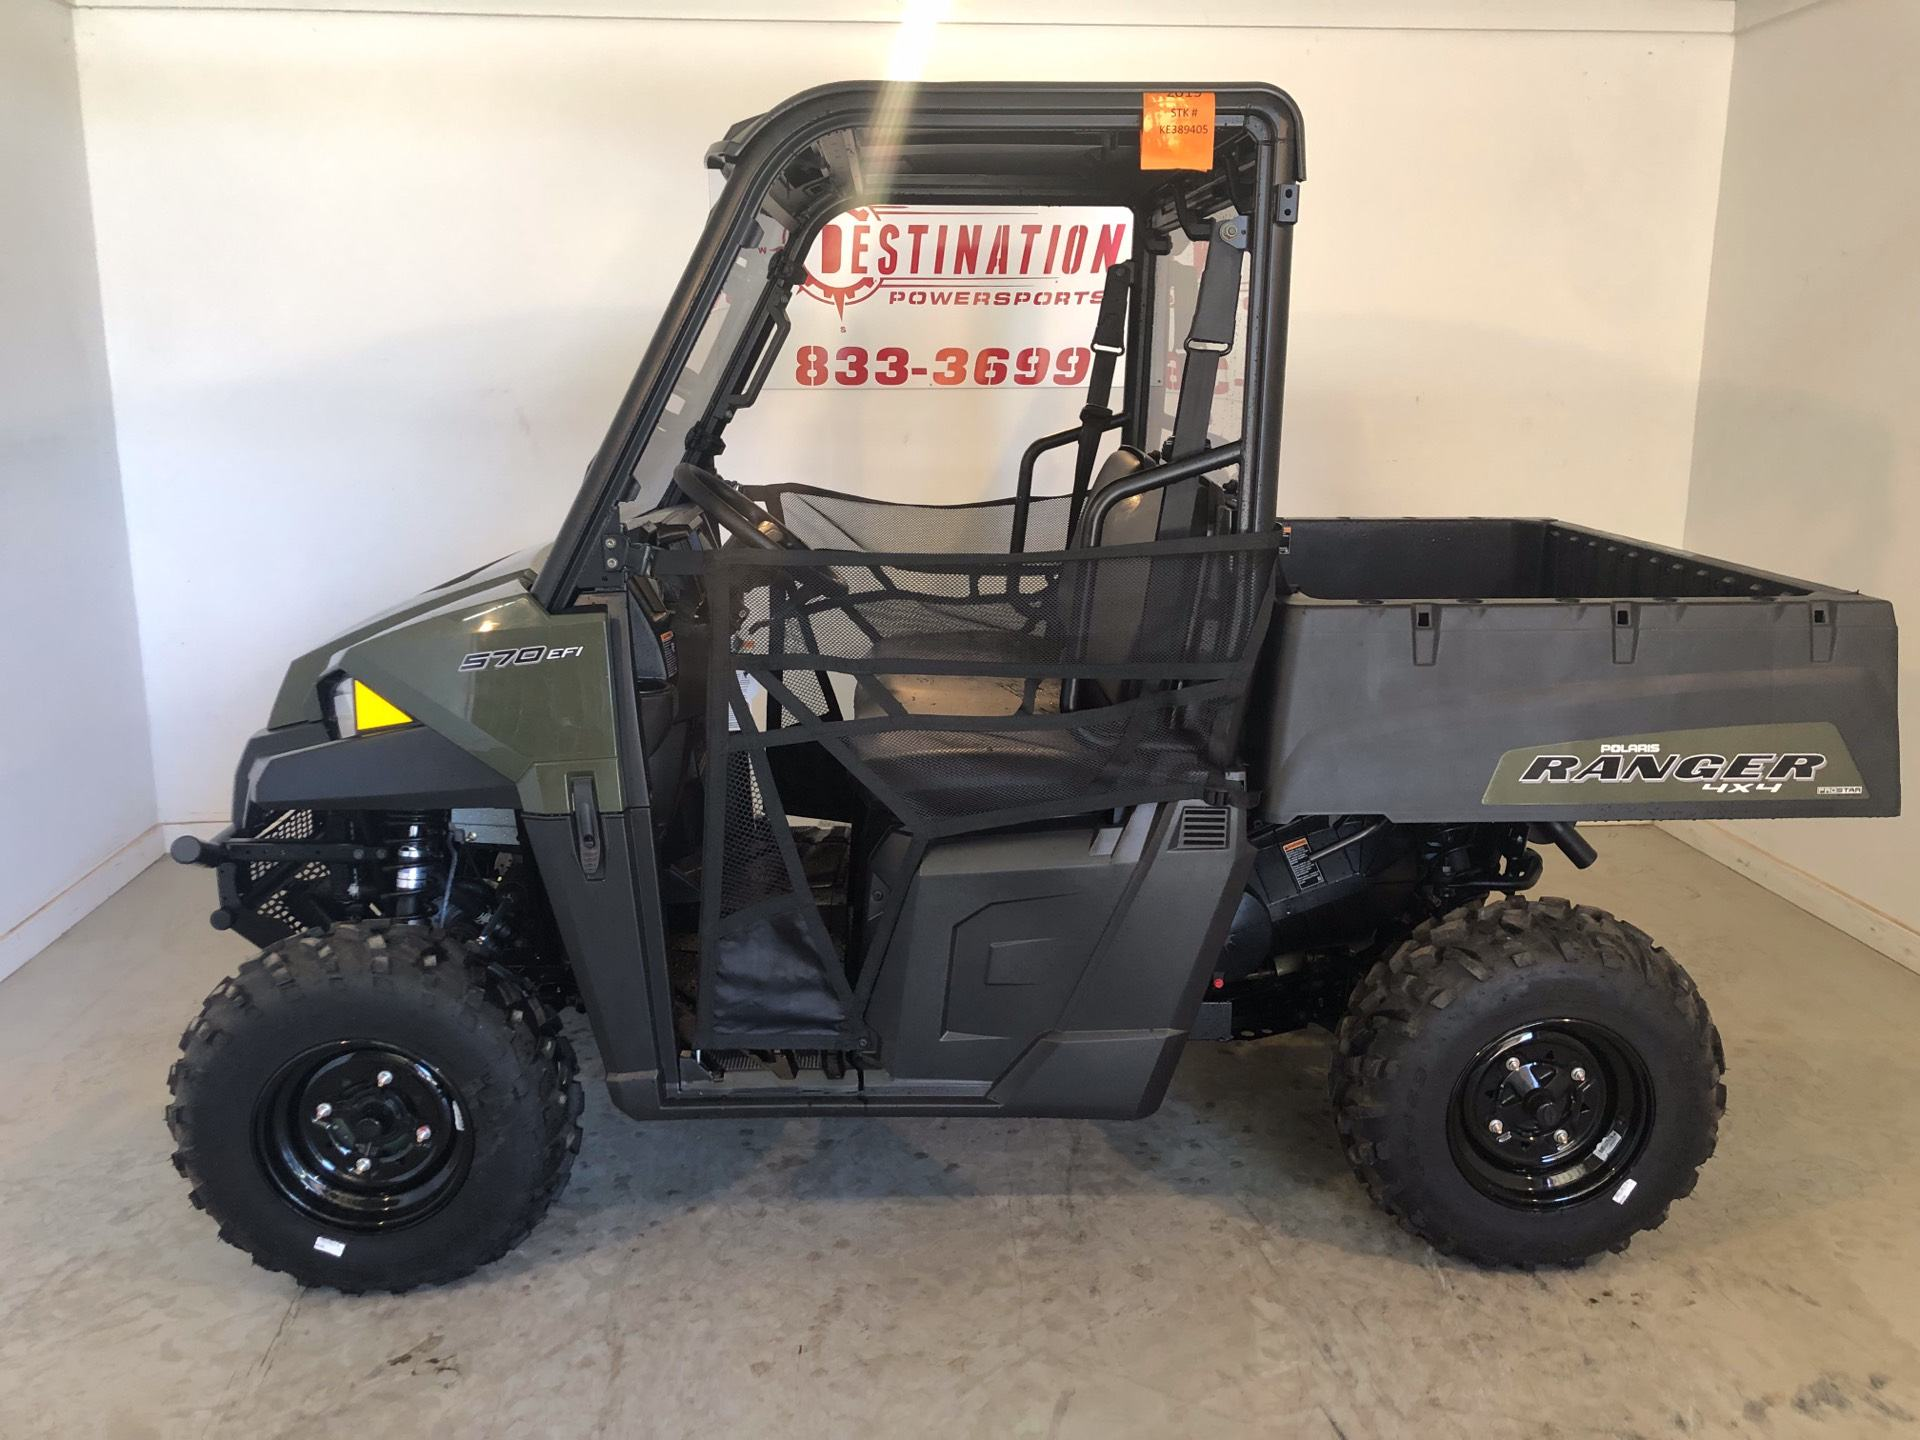 2020 Polaris Ranger 570 in Clinton, South Carolina - Photo 3